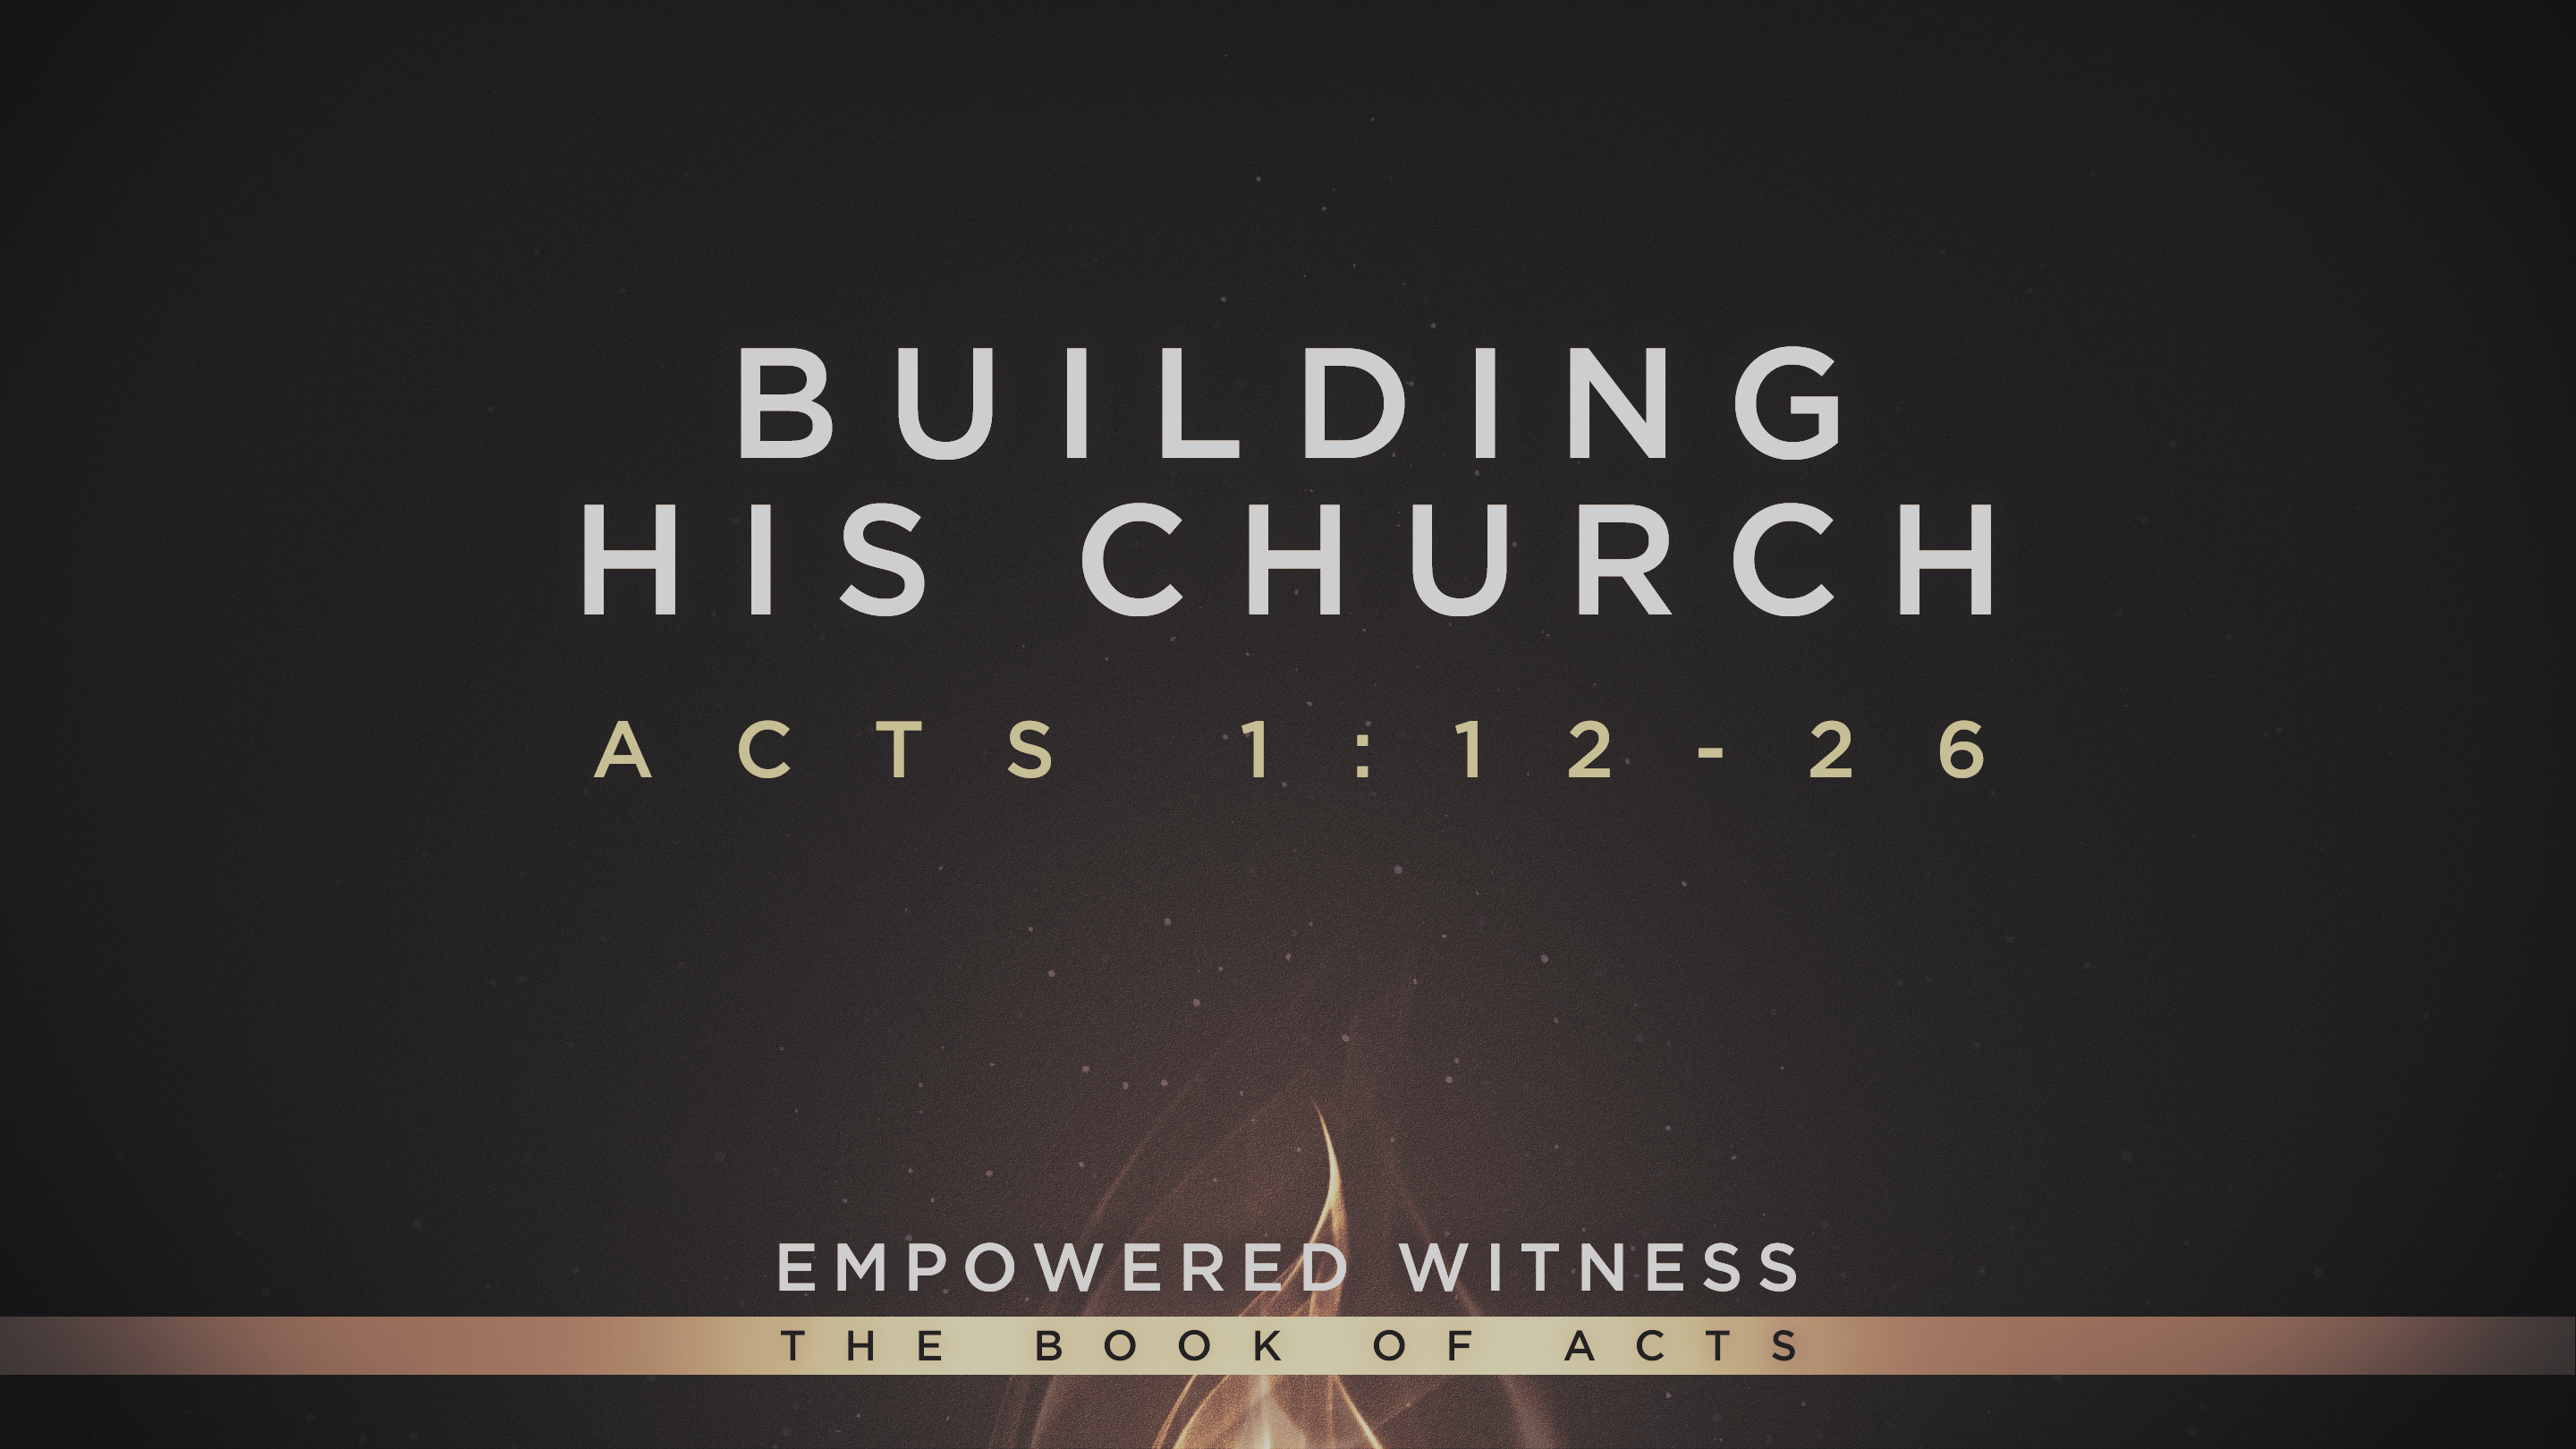 Building His Church: Acts 1:12-26